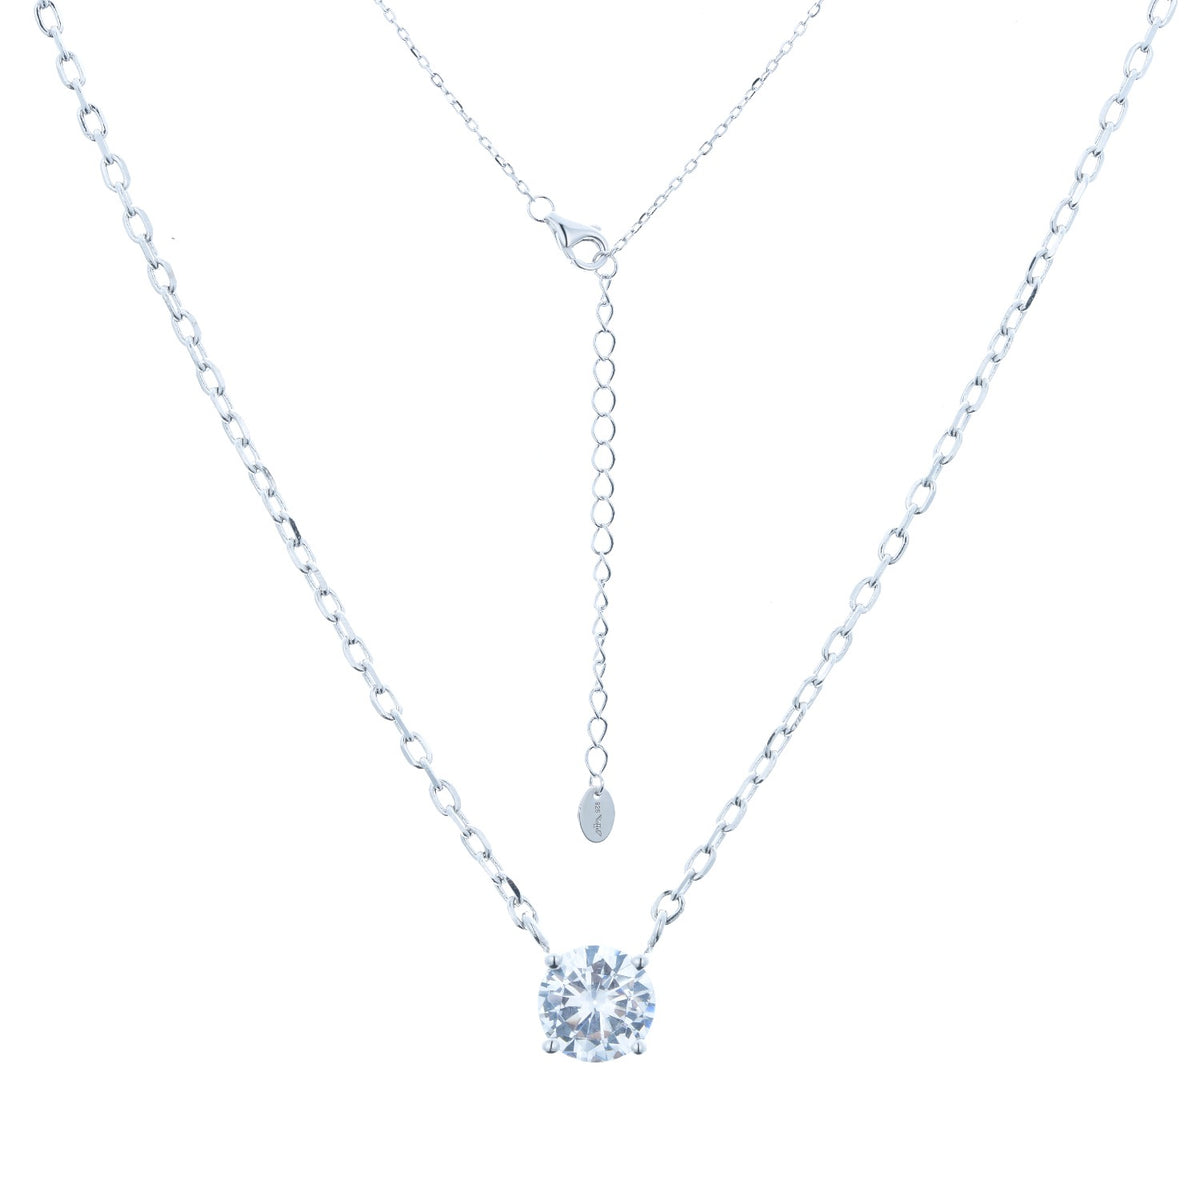 Fortuna | Positano Necklace | 925 Silver | White CZ | White Rhodium Plated